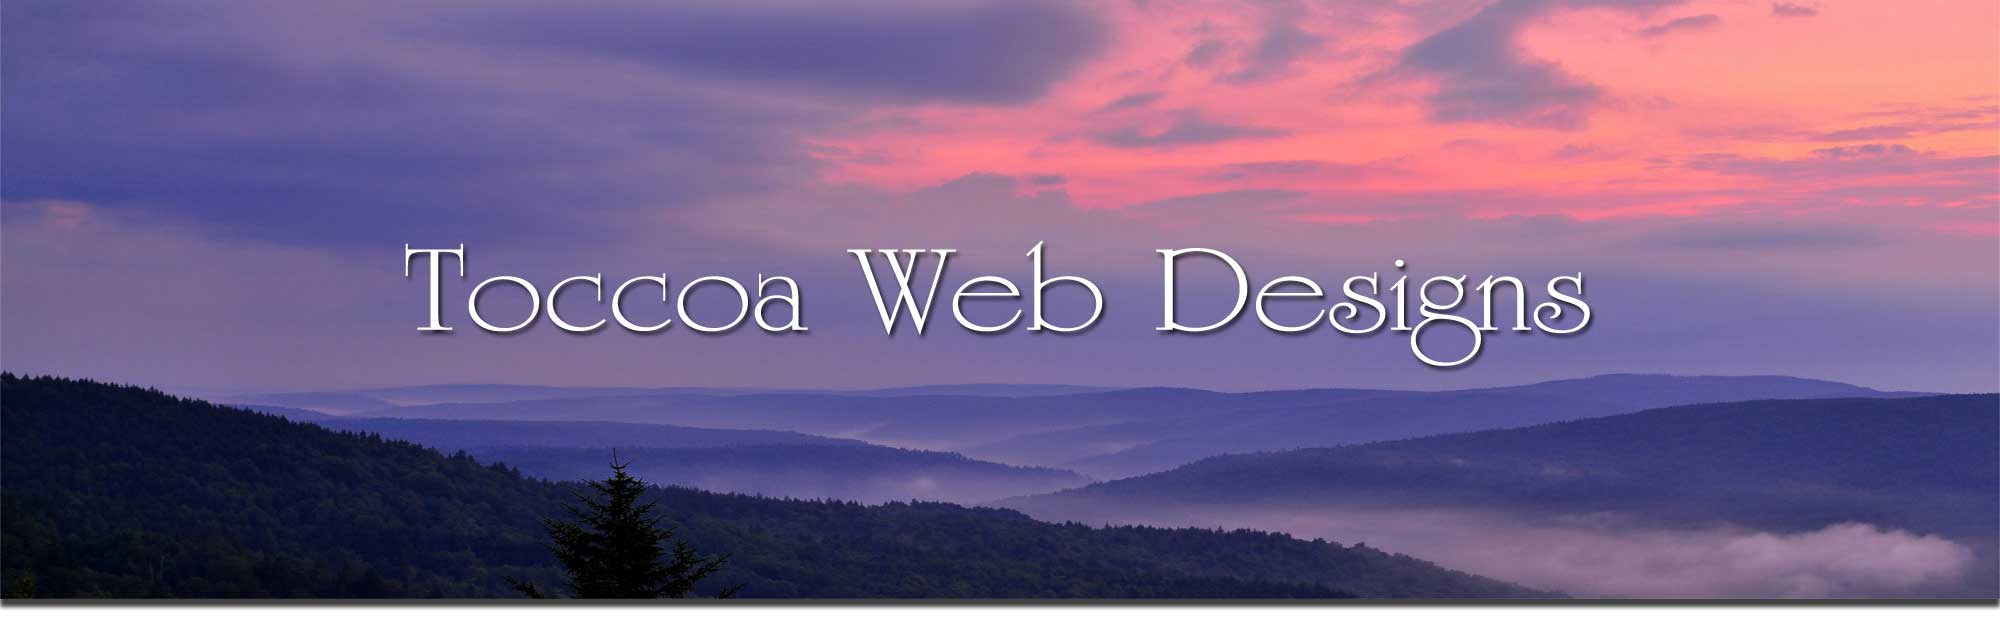 toccoa web designs banner image